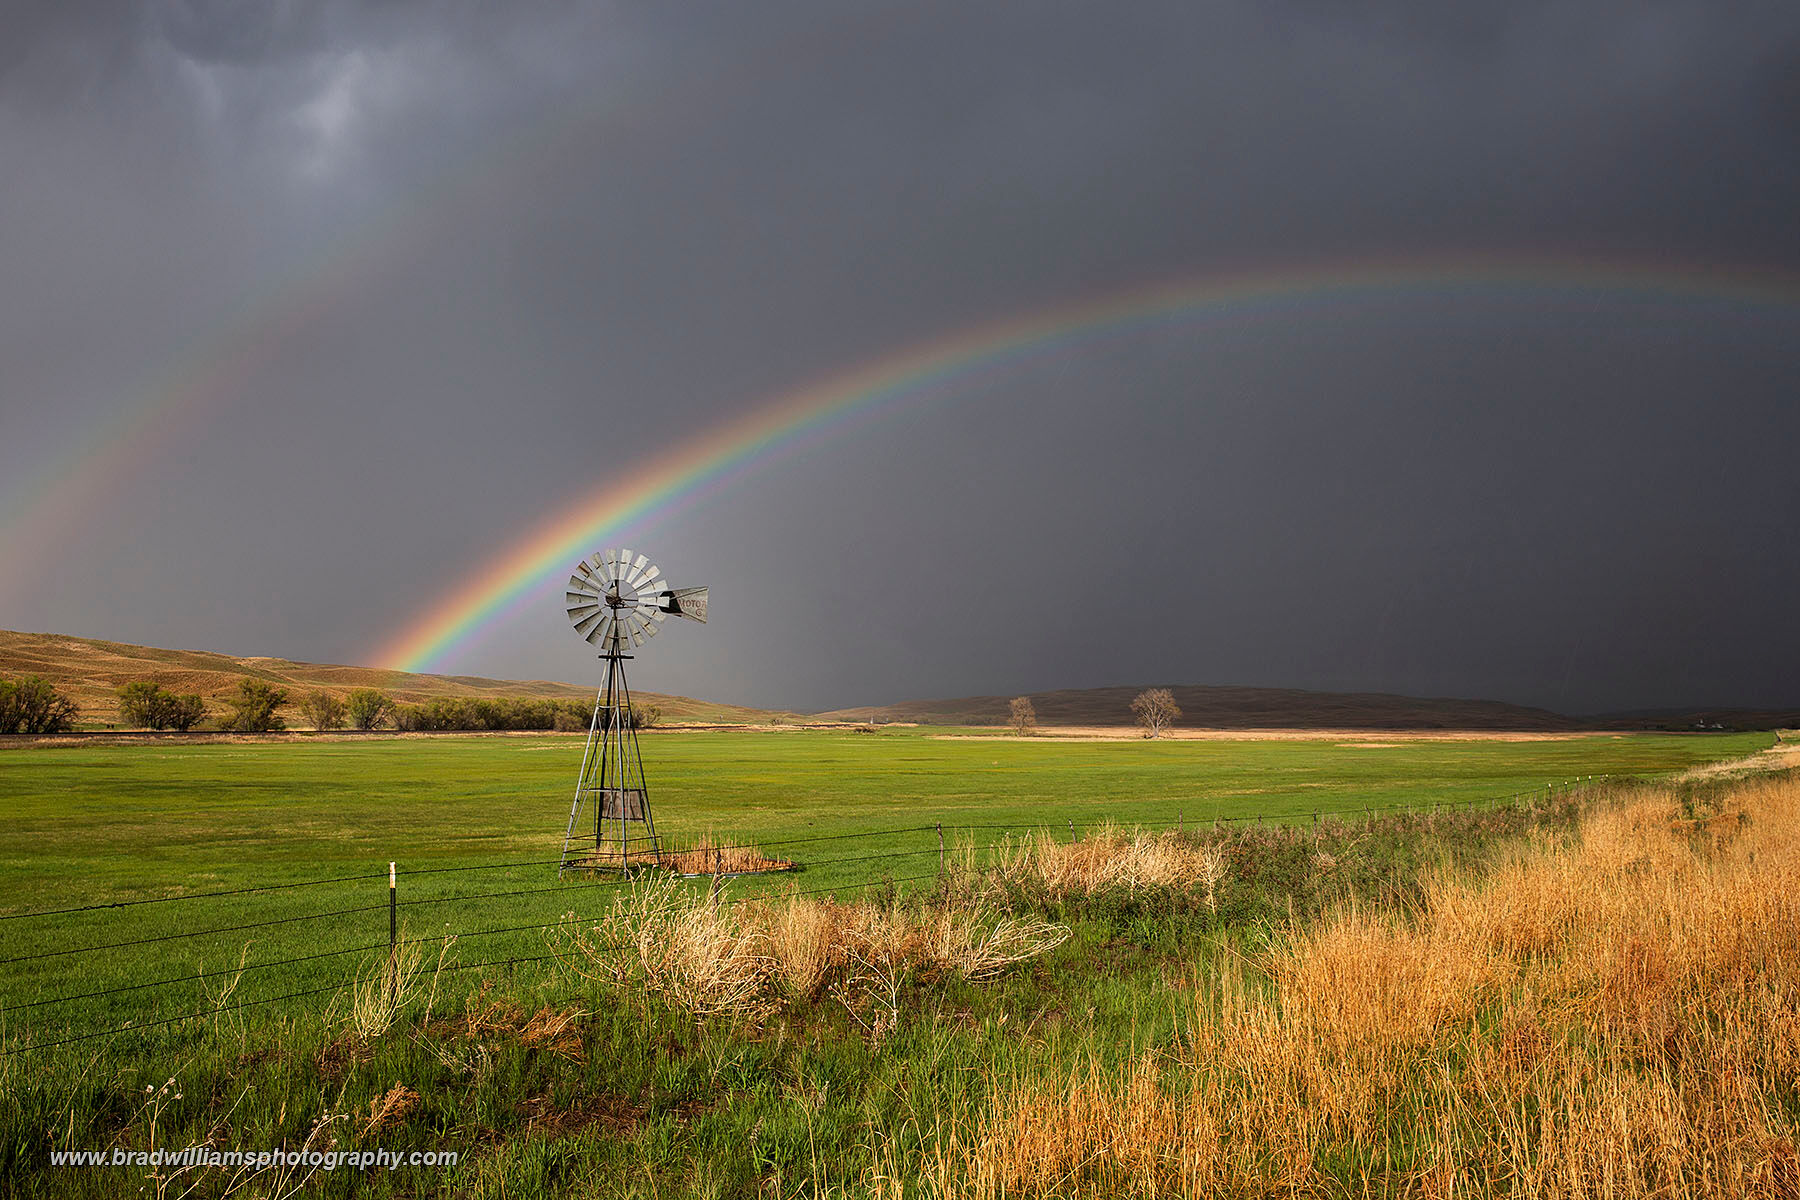 After driving through a storm in the Nebraska Sandhills, I emerged out in to the sunlight and saw this beautiful scene!  This...